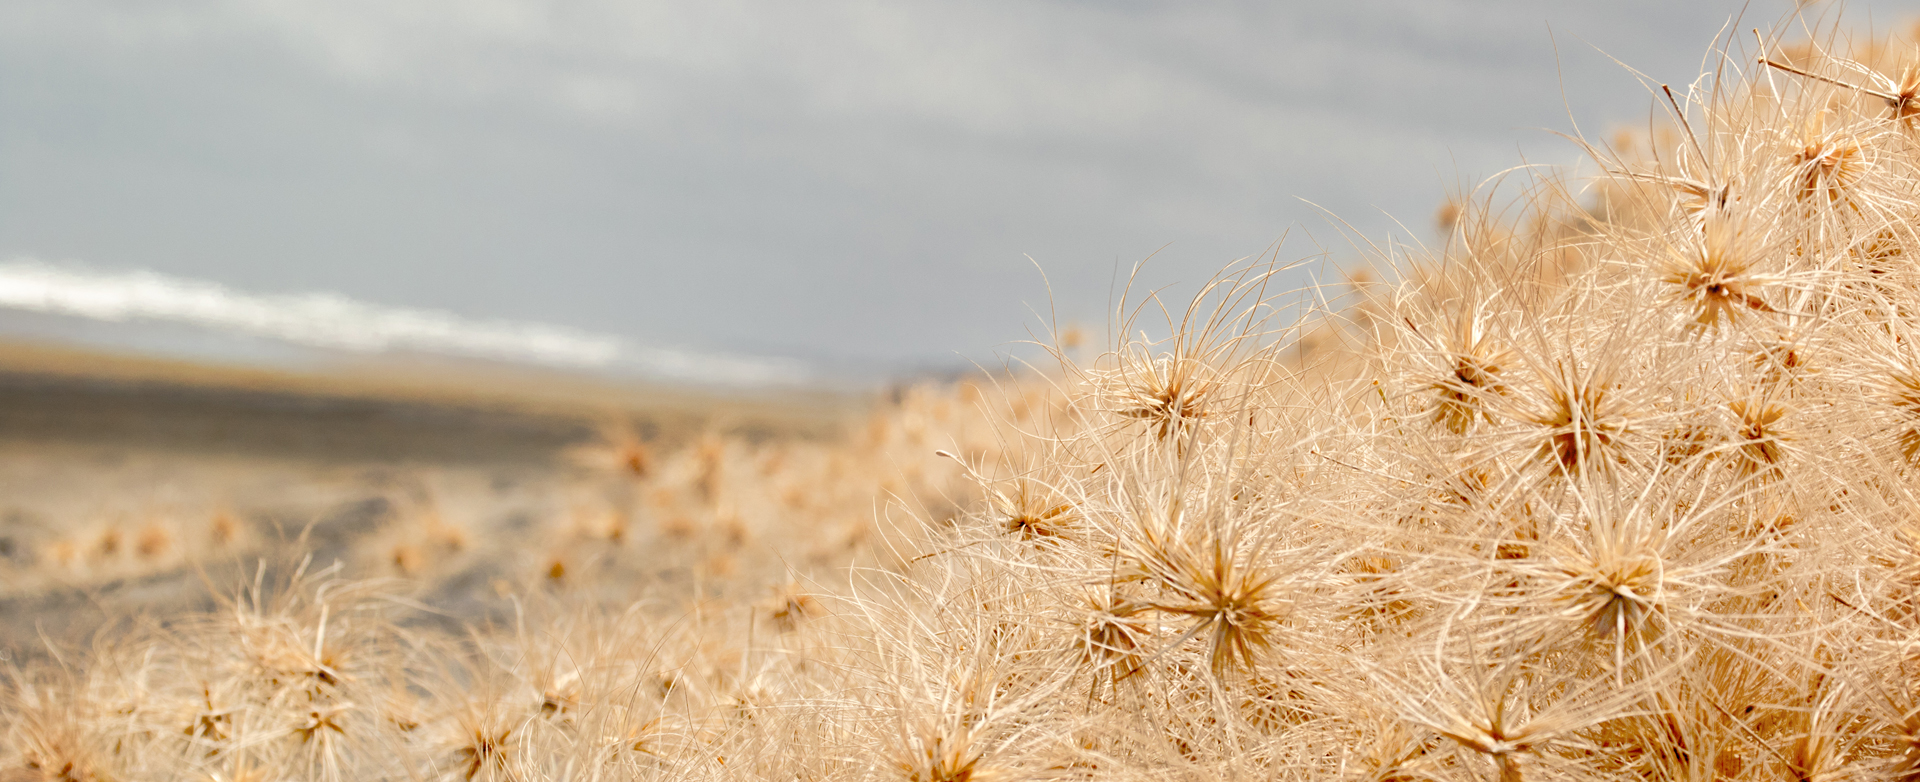 Tons of Tumble weeds